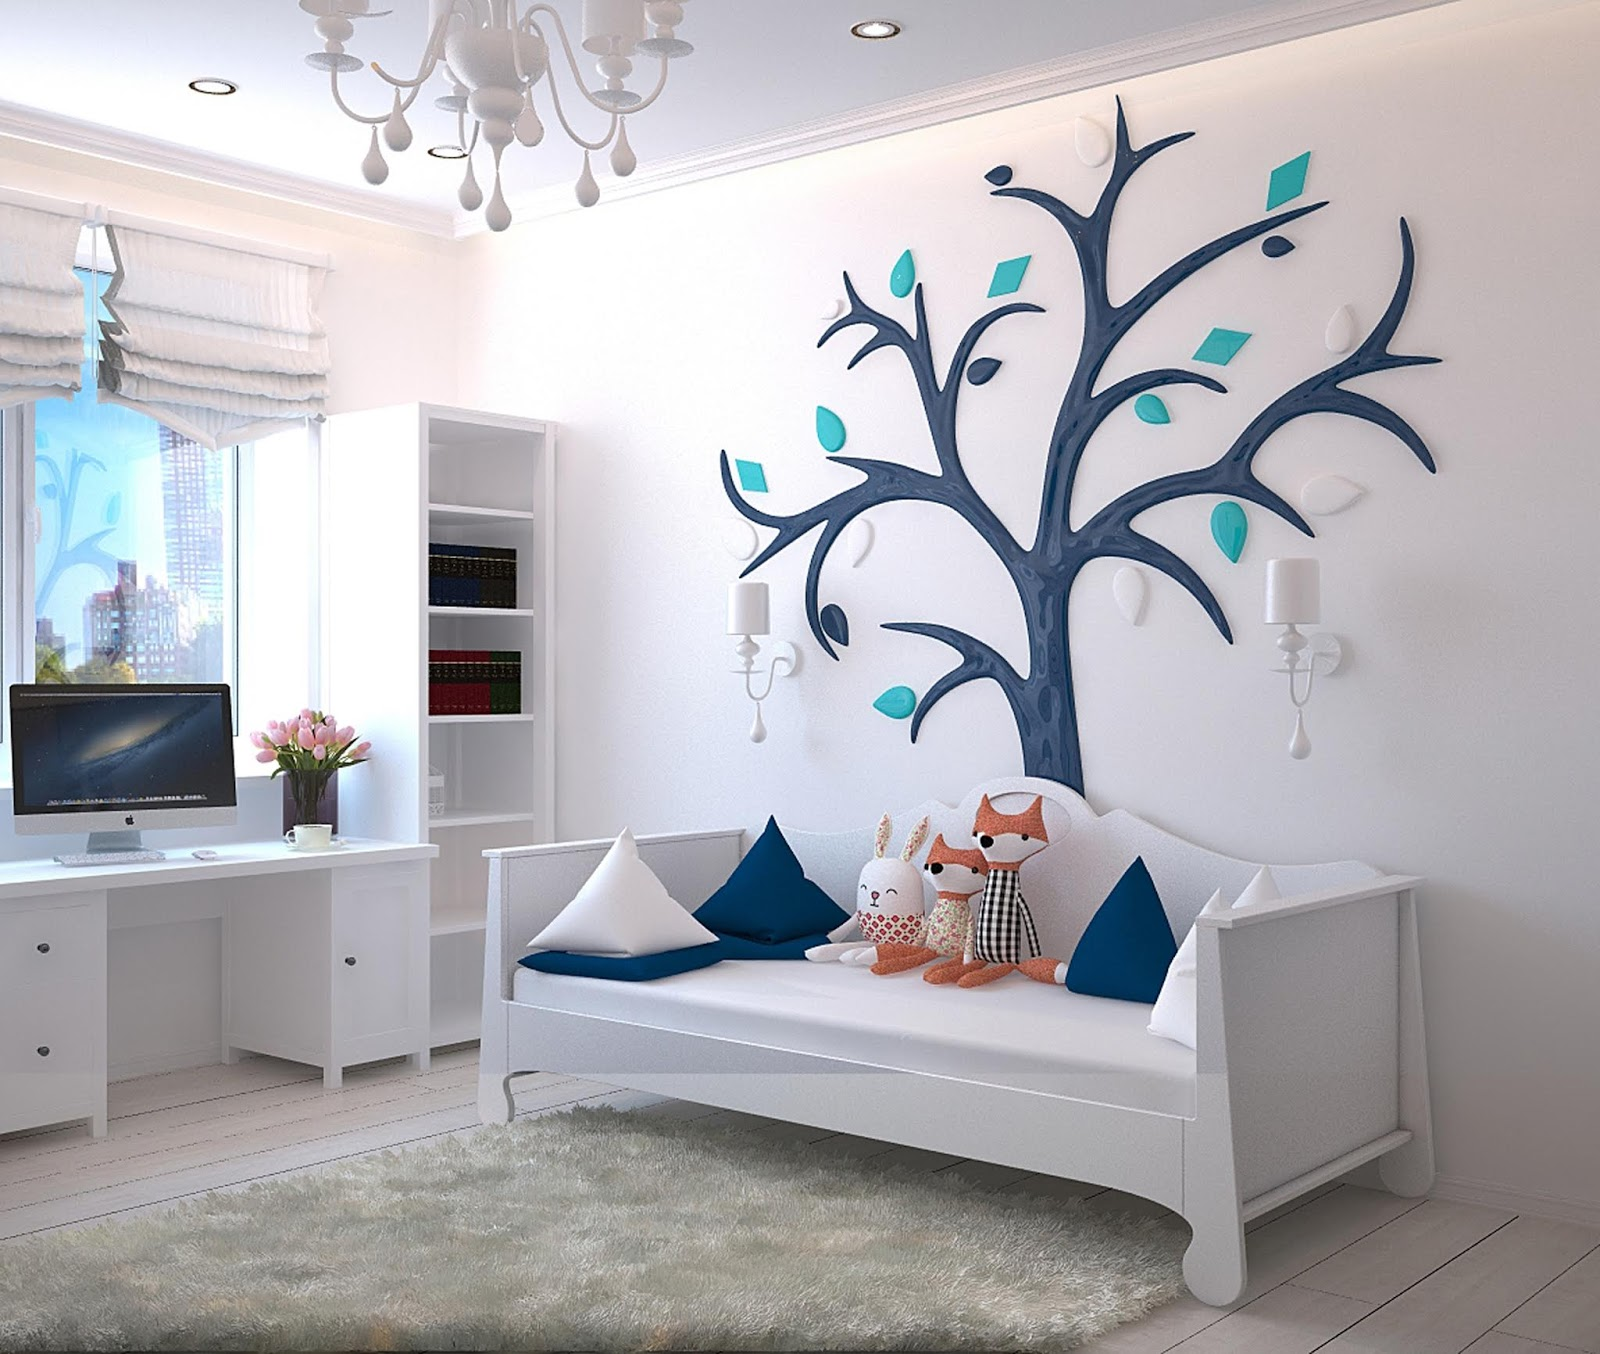 11 Quick Decorating Ideas to Beautify Your Home